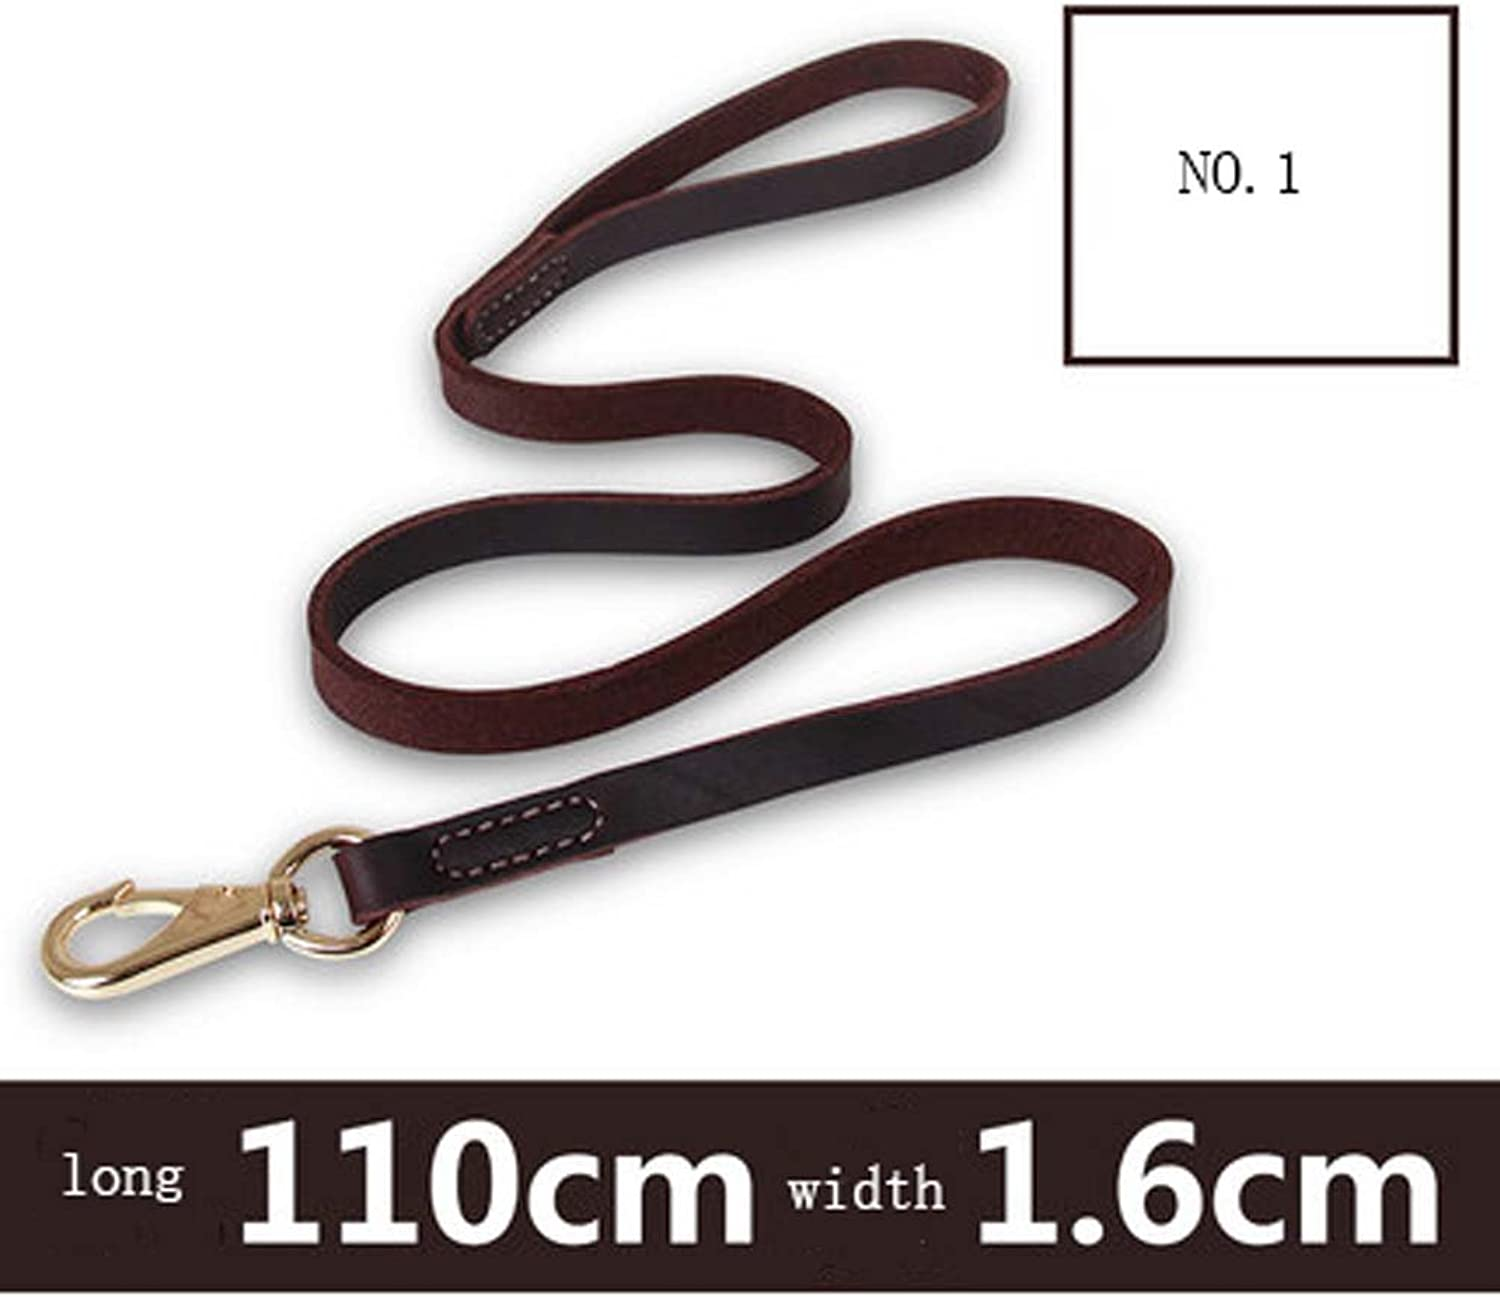 Dog Leash Small Medium And Large Dogs Pet Dog Chain Leather Dog Rope